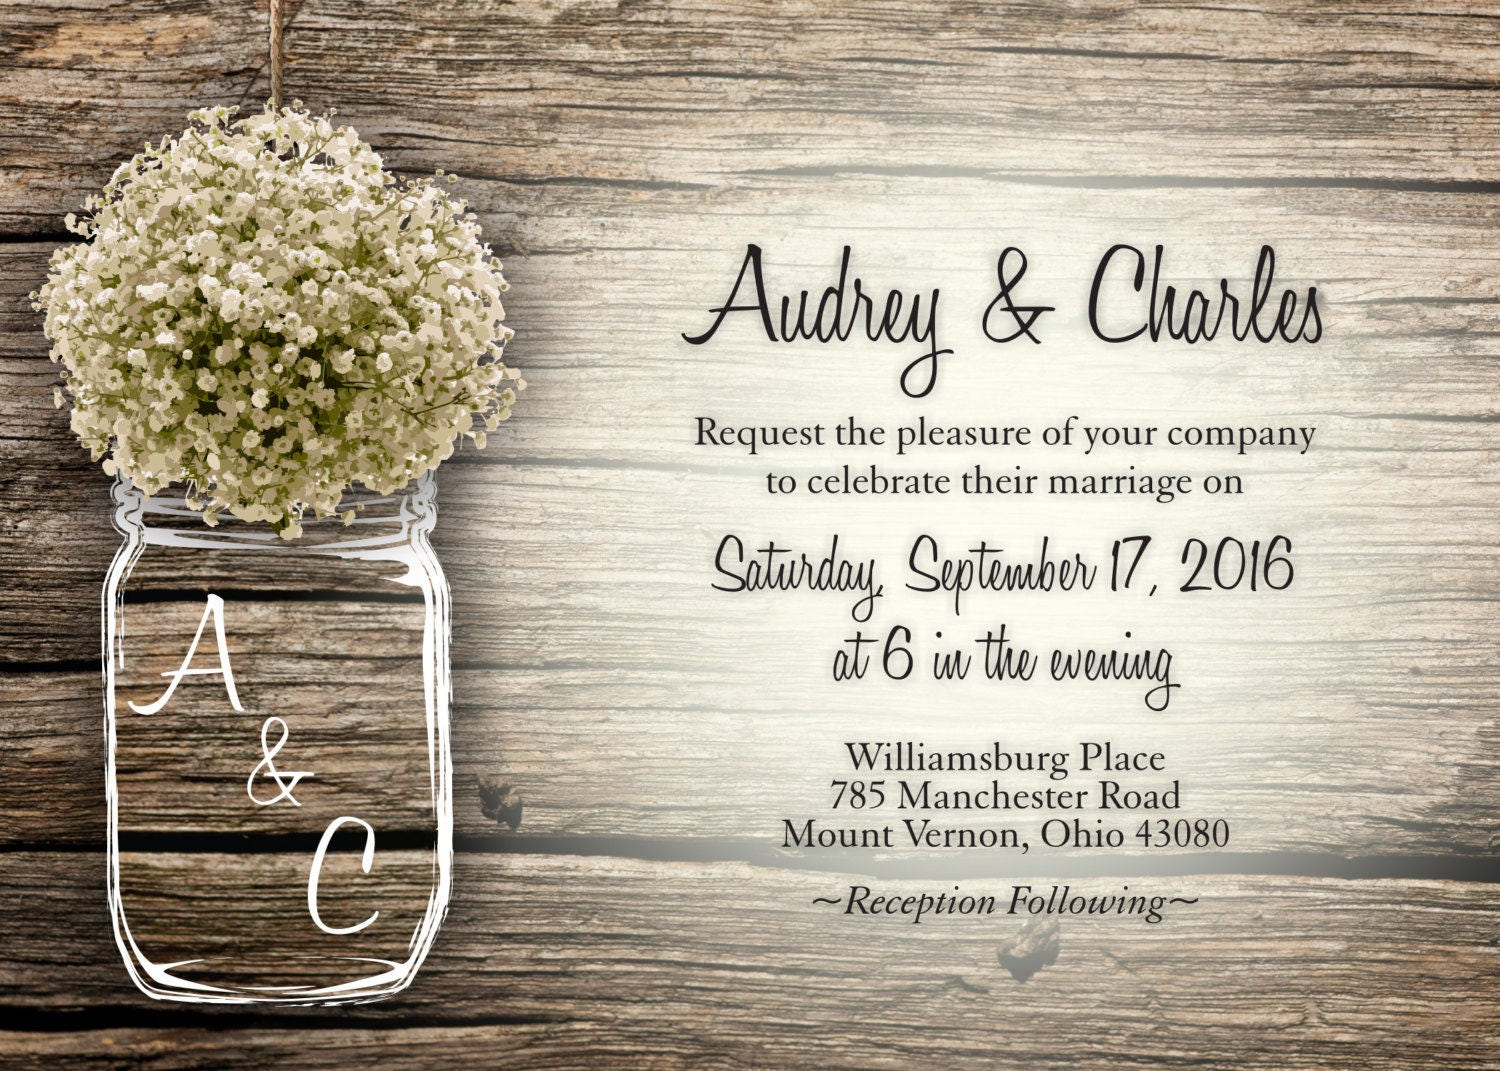 Country Wedding Invitation, Rustic Wedding Invitations, Babyu0027s Breath,  Mason Jar Wedding Invitations Cards, Barn Wood, Wedding Card Cheap